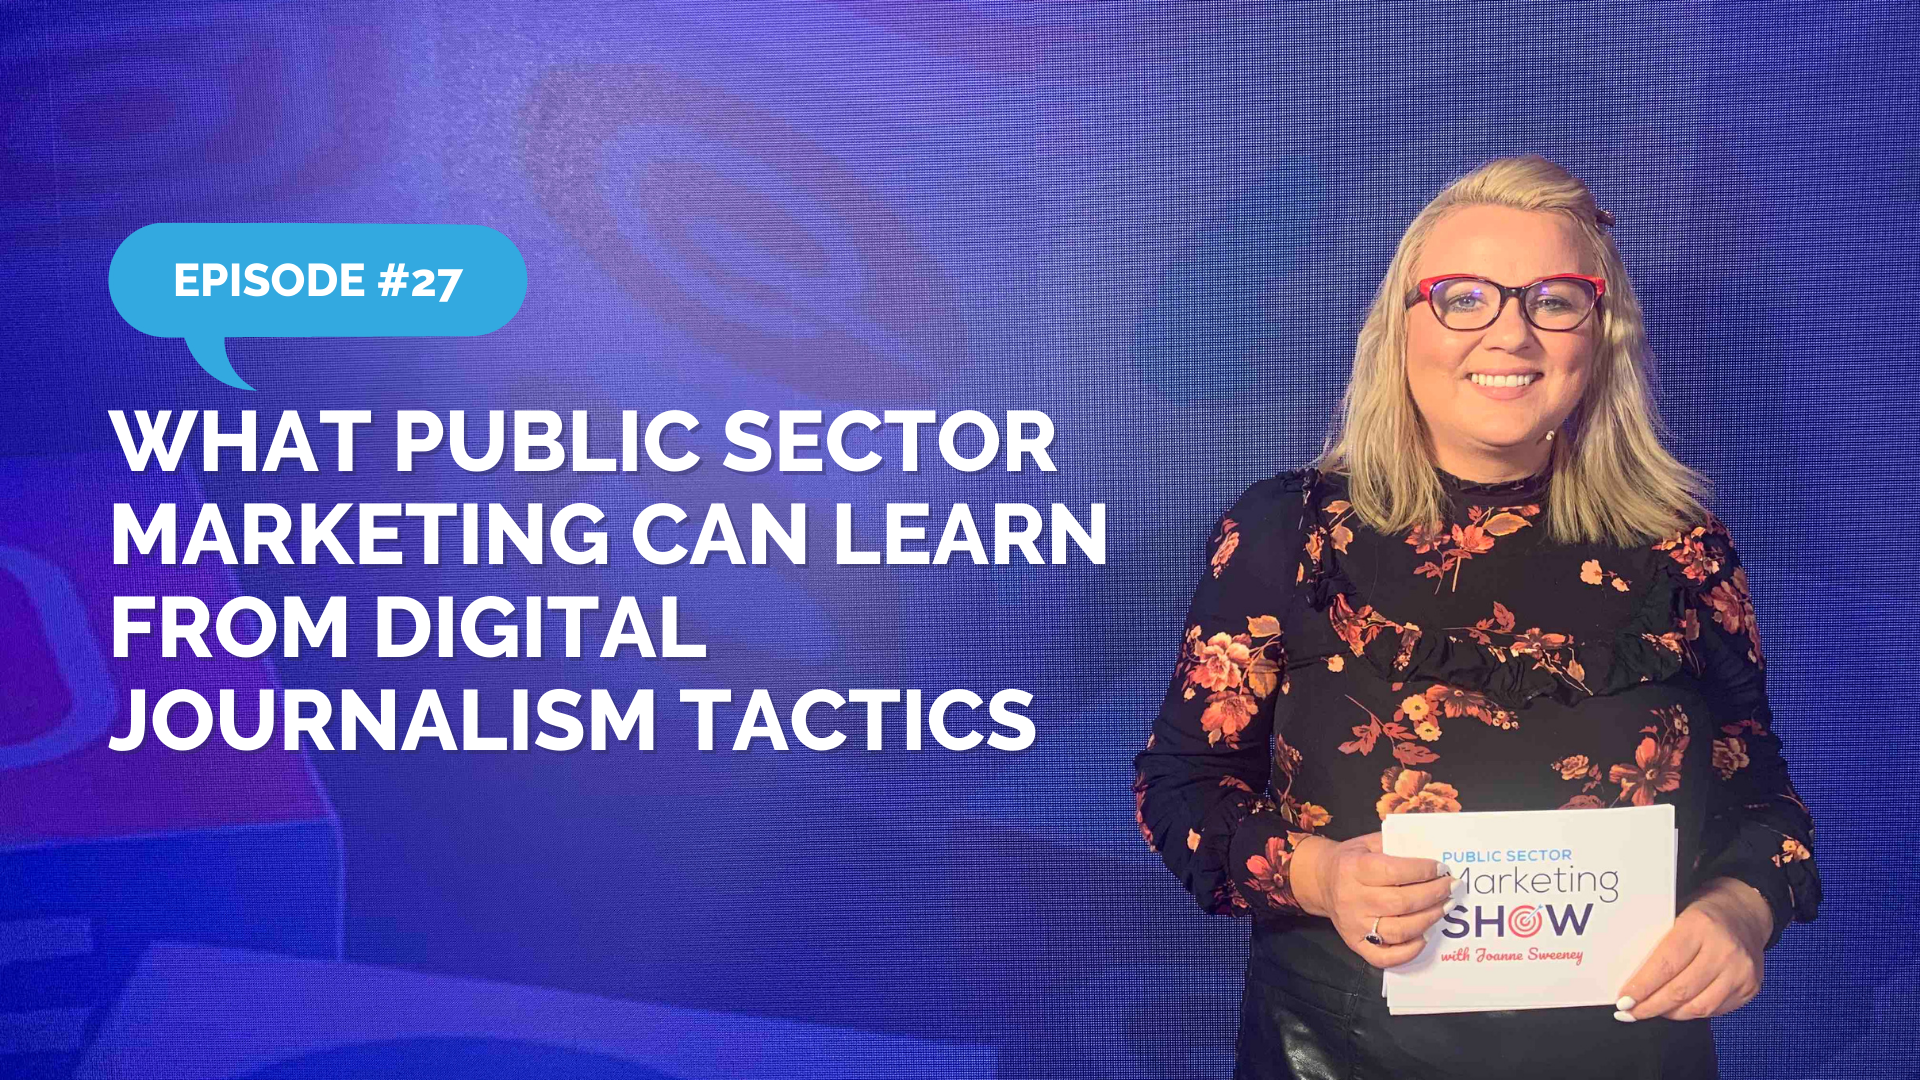 Episode 27- What Public Sector Marketing Can Learn from Digital Journalism Tactics